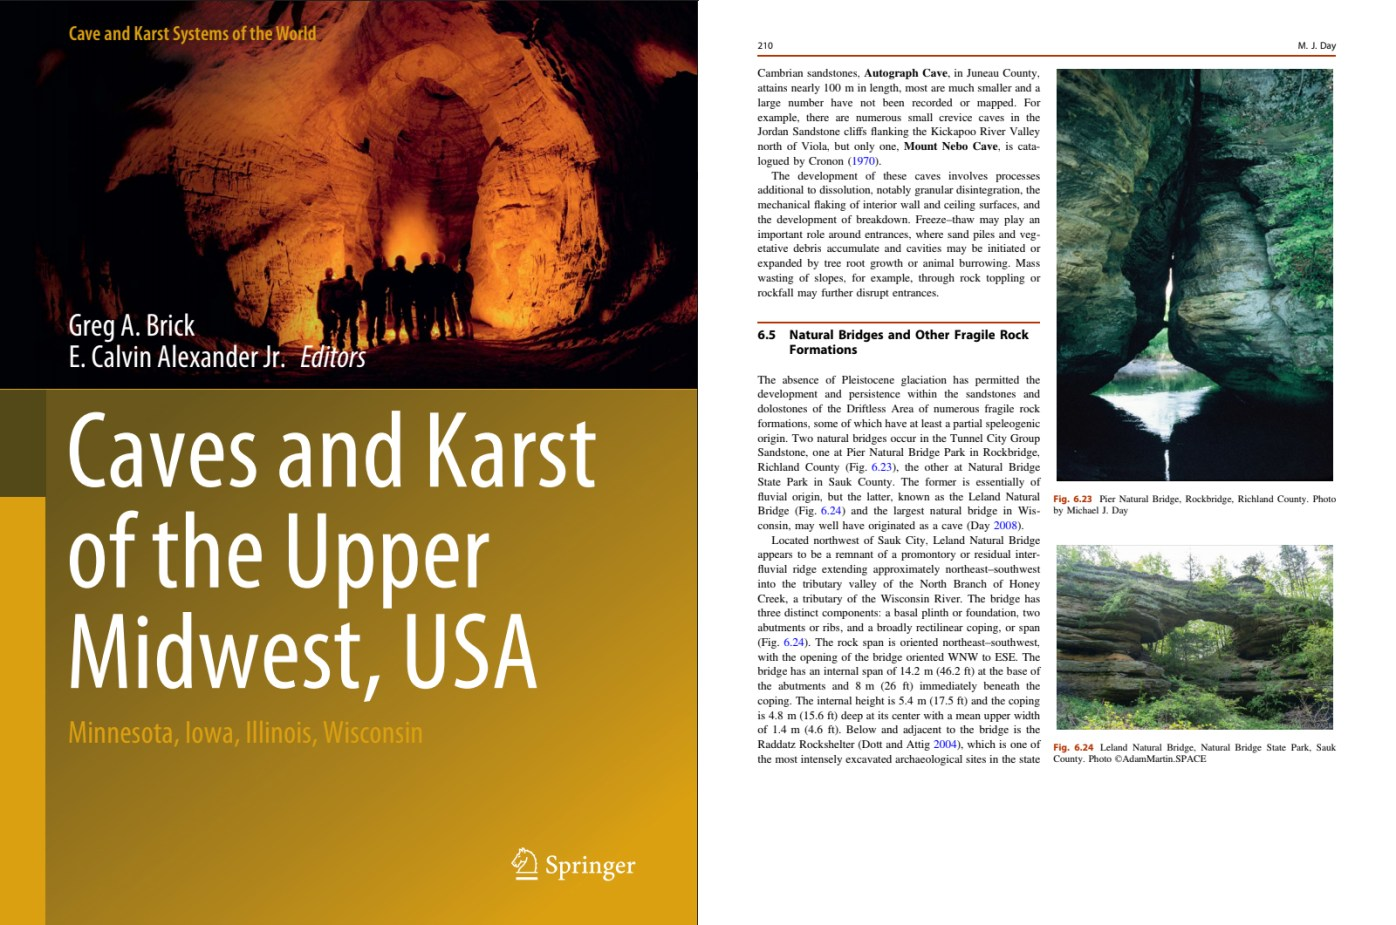 Caves and Karst of the Upper Midwest, USA: Minnesota, Iowa, Illinois, Wisconsin By Greg A. Brick and E. Calvin Alexander Jr.